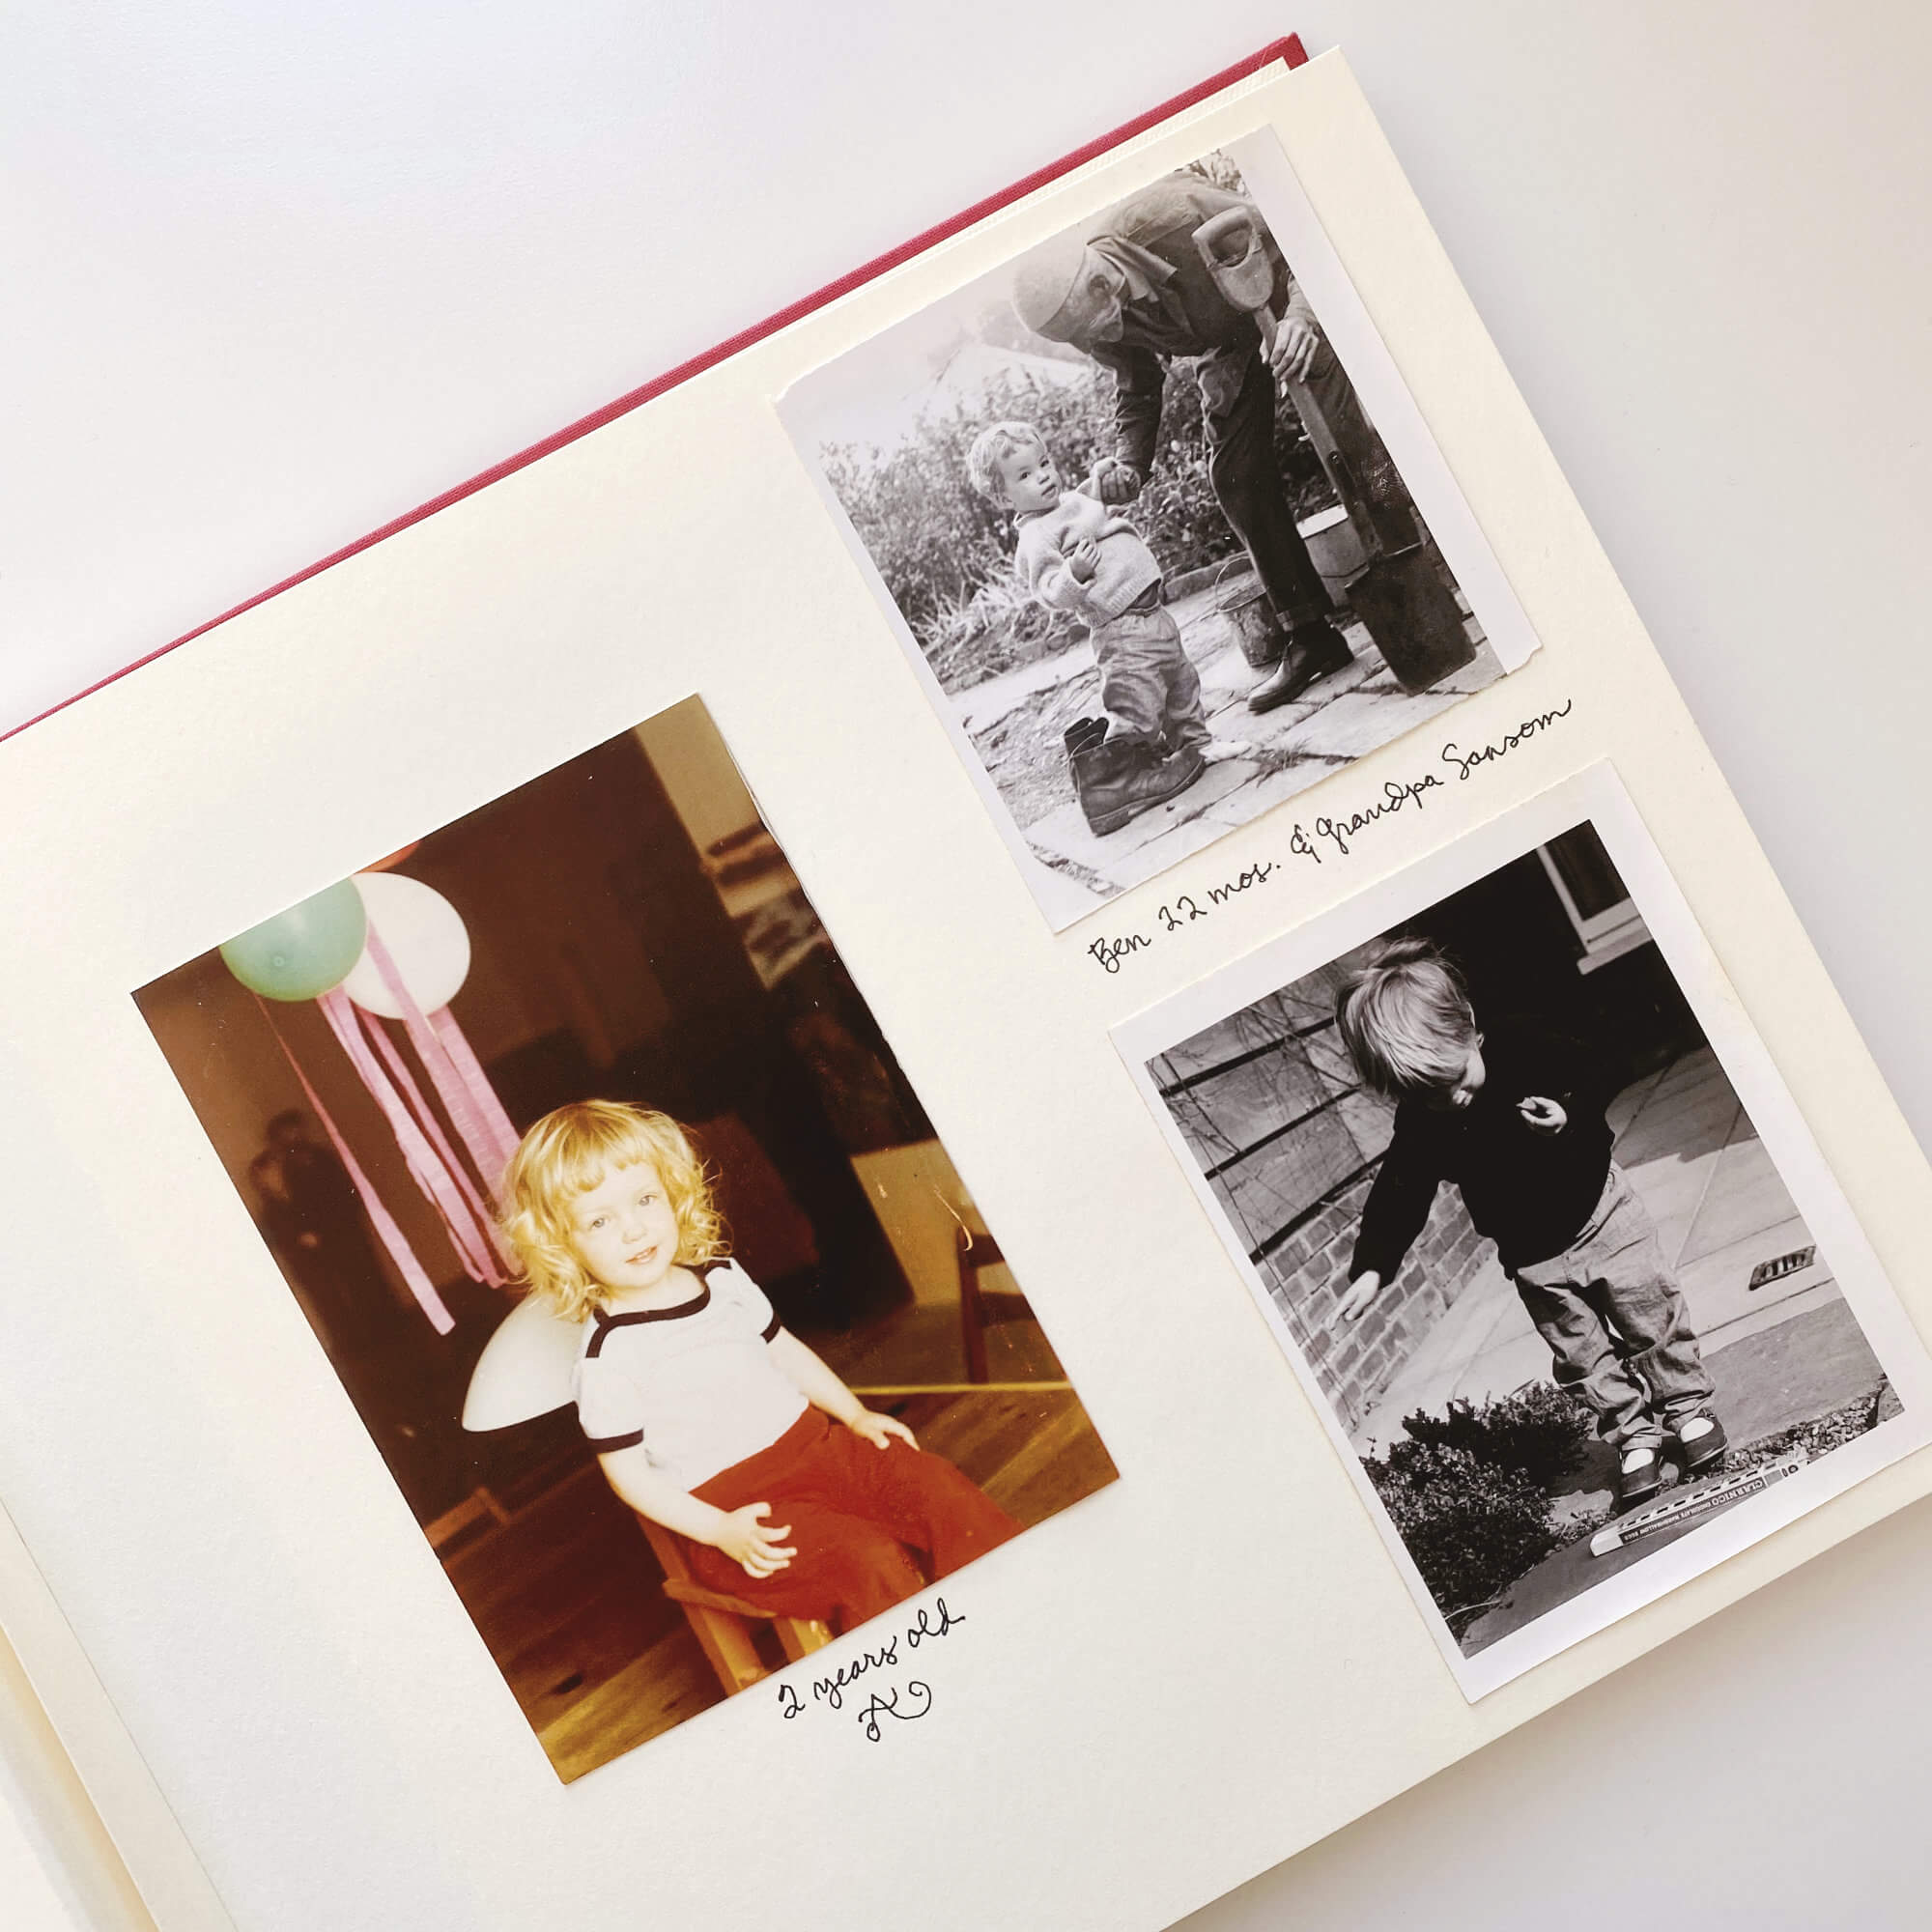 KonMari Tidying – Category Five: Sentimental Items. Lovely Photo Album With Childhood Photos Of Girl & Boy